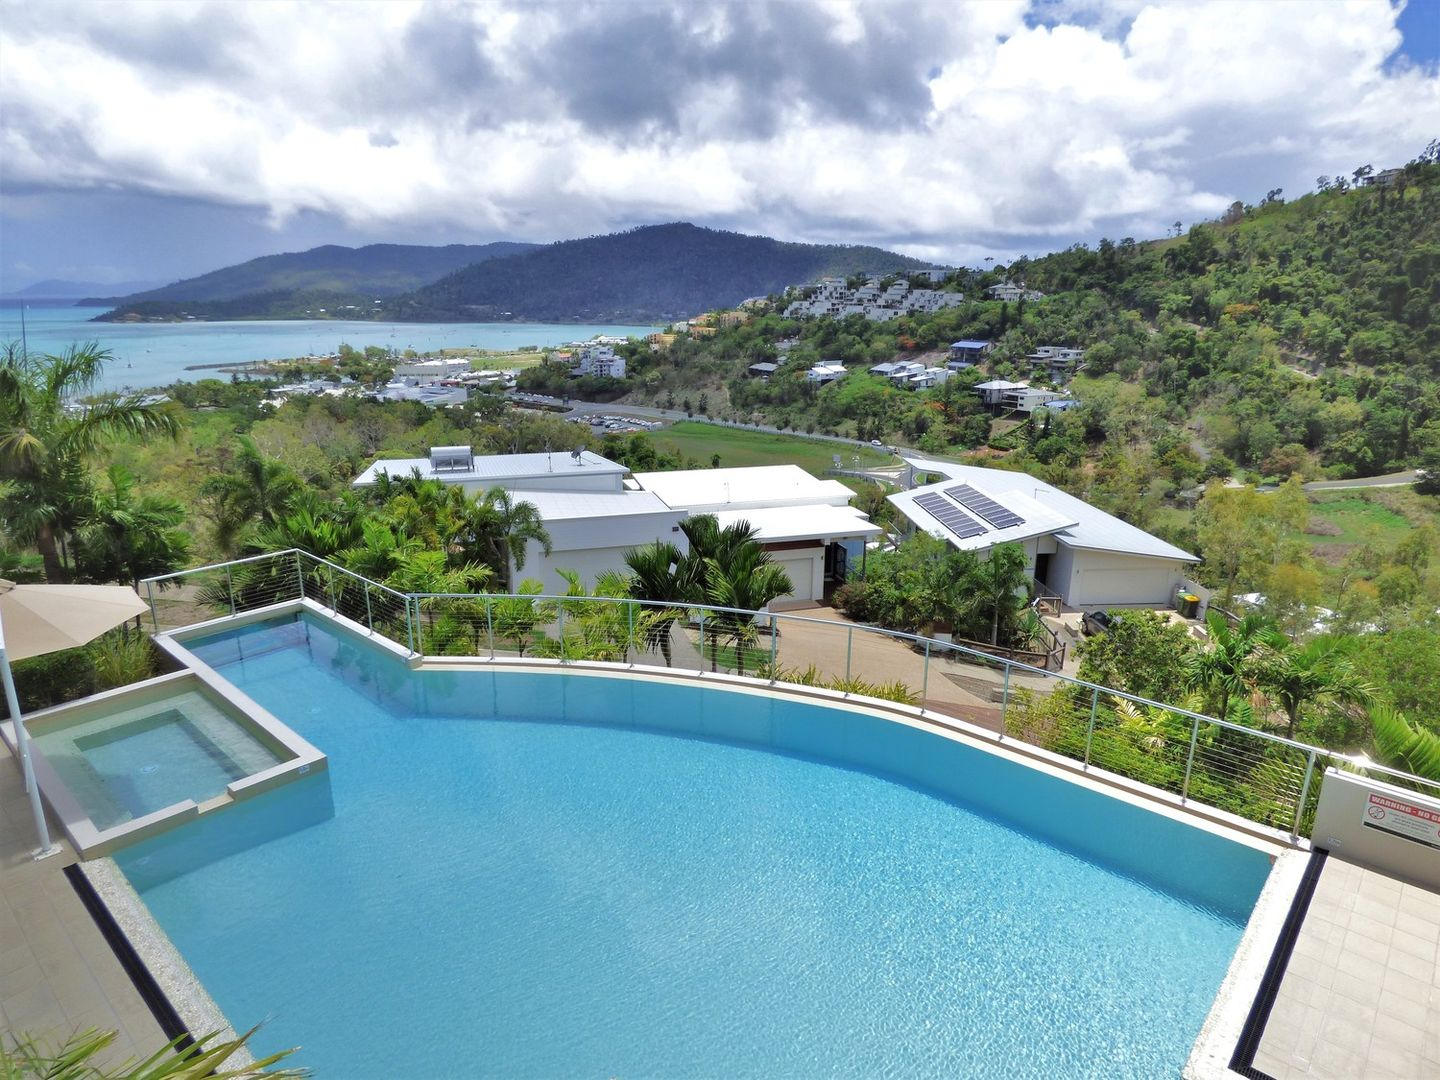 22/18 Seaview Drive, Airlie Beach QLD 4802, Image 0